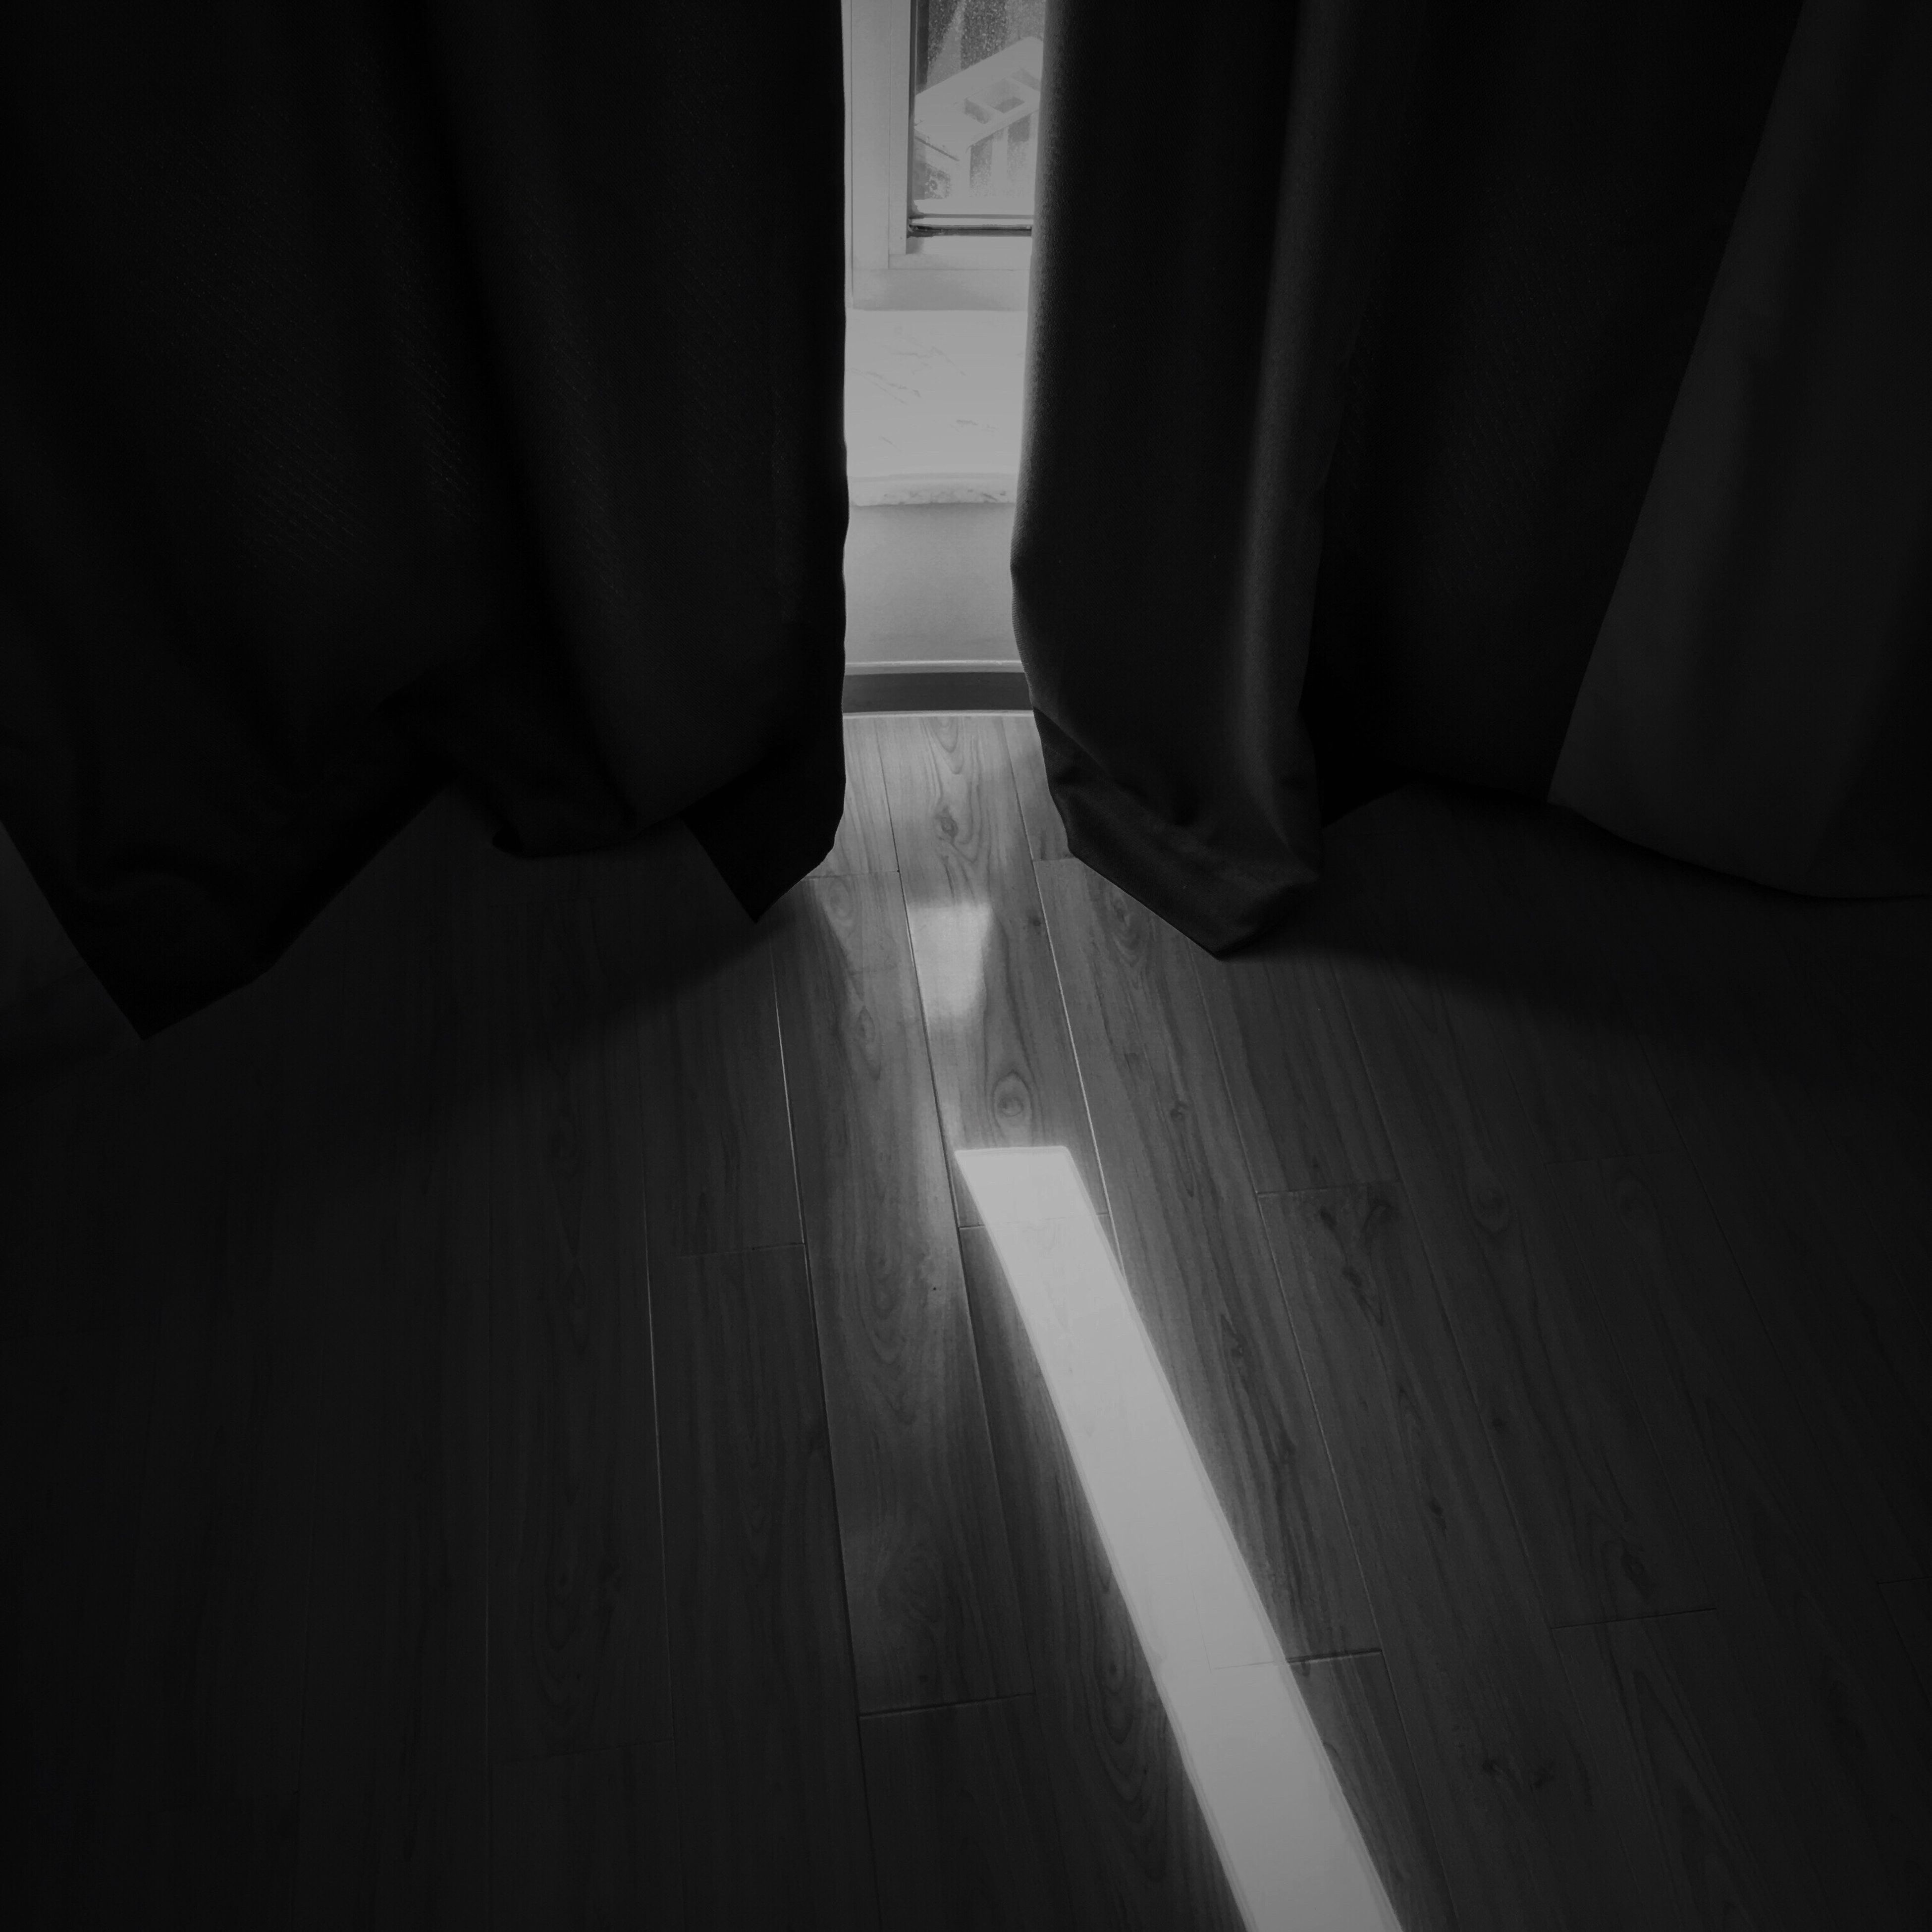 indoors, curtain, shadow, low section, window, sunlight, home interior, person, flooring, empty, relaxation, day, absence, dark, floor, domestic room, human foot, part of